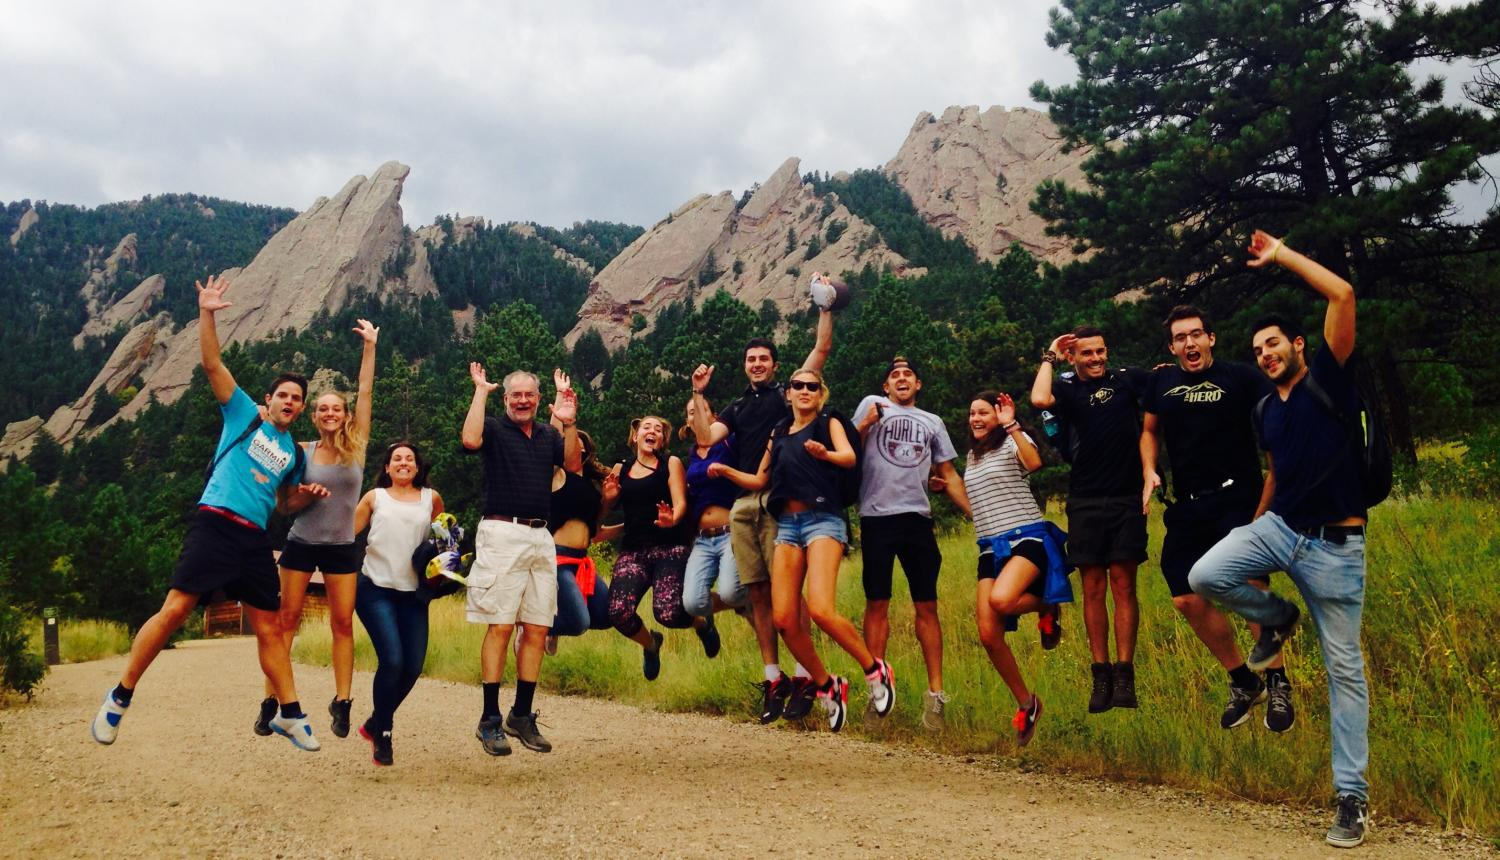 New Balsells Fellows on a welcome hike, jumping, with Flatirons in the background.